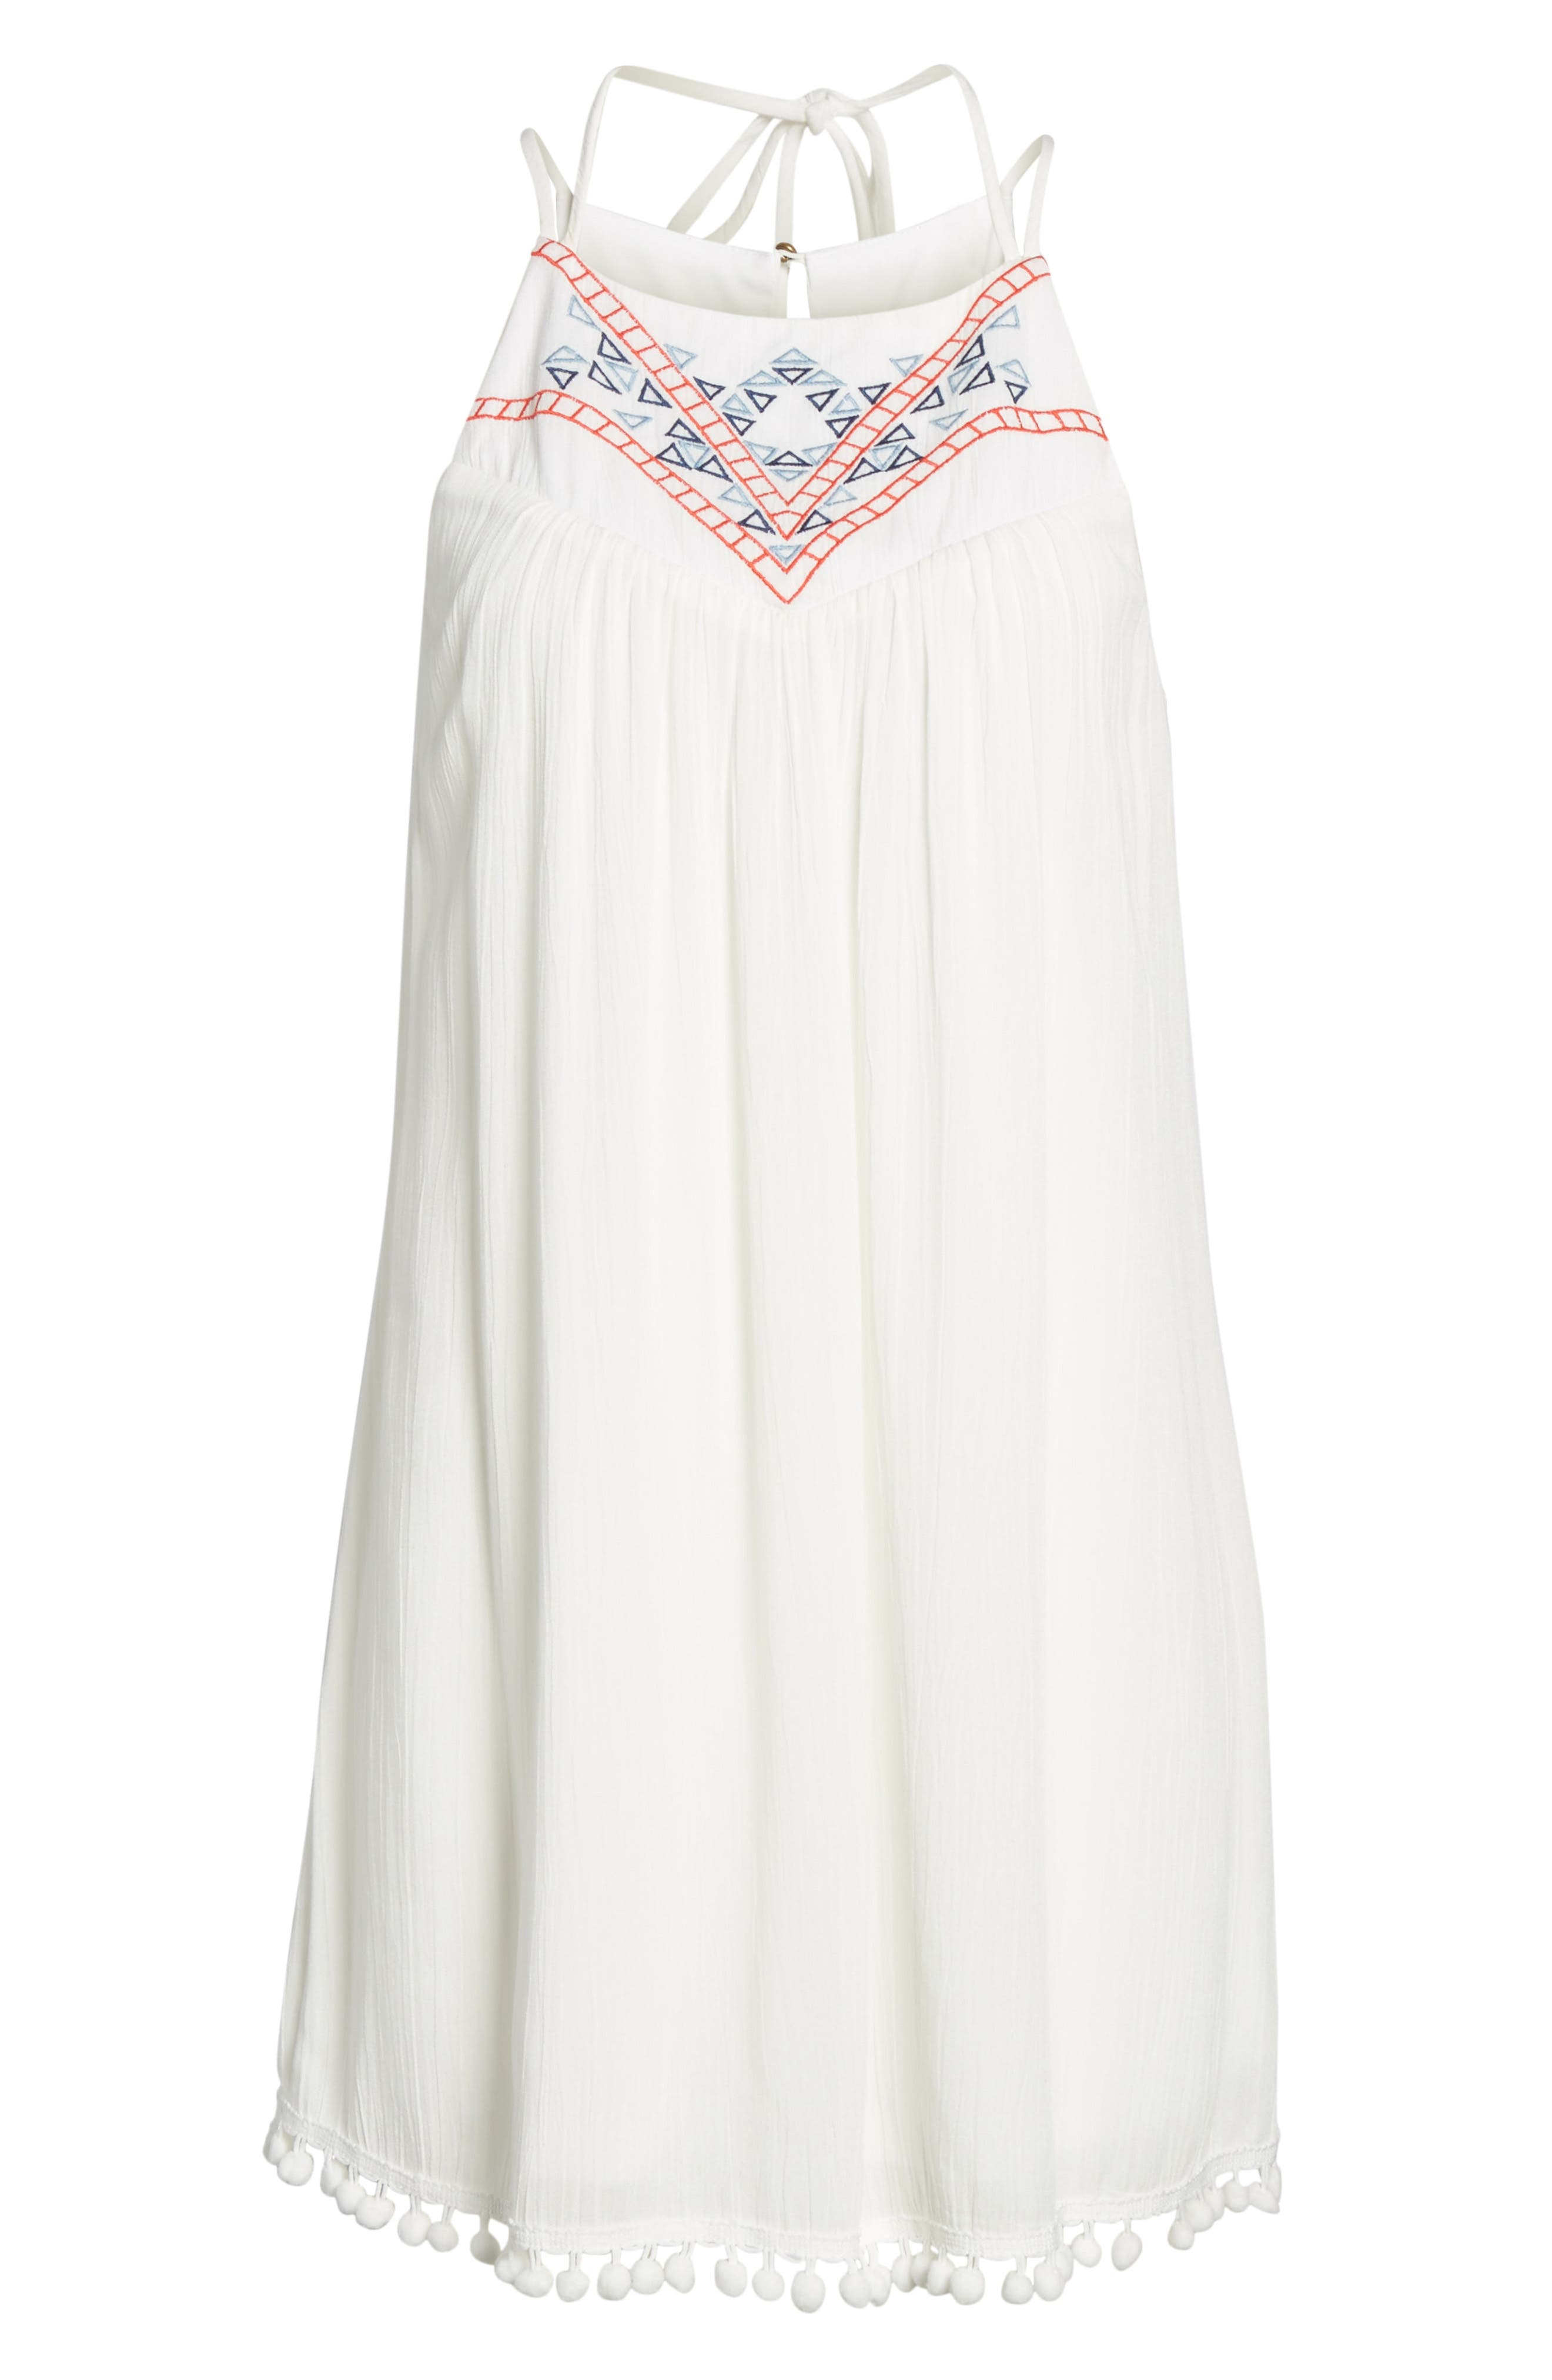 Embroidered Swing Dress,                             Alternate thumbnail 6, color,                             100